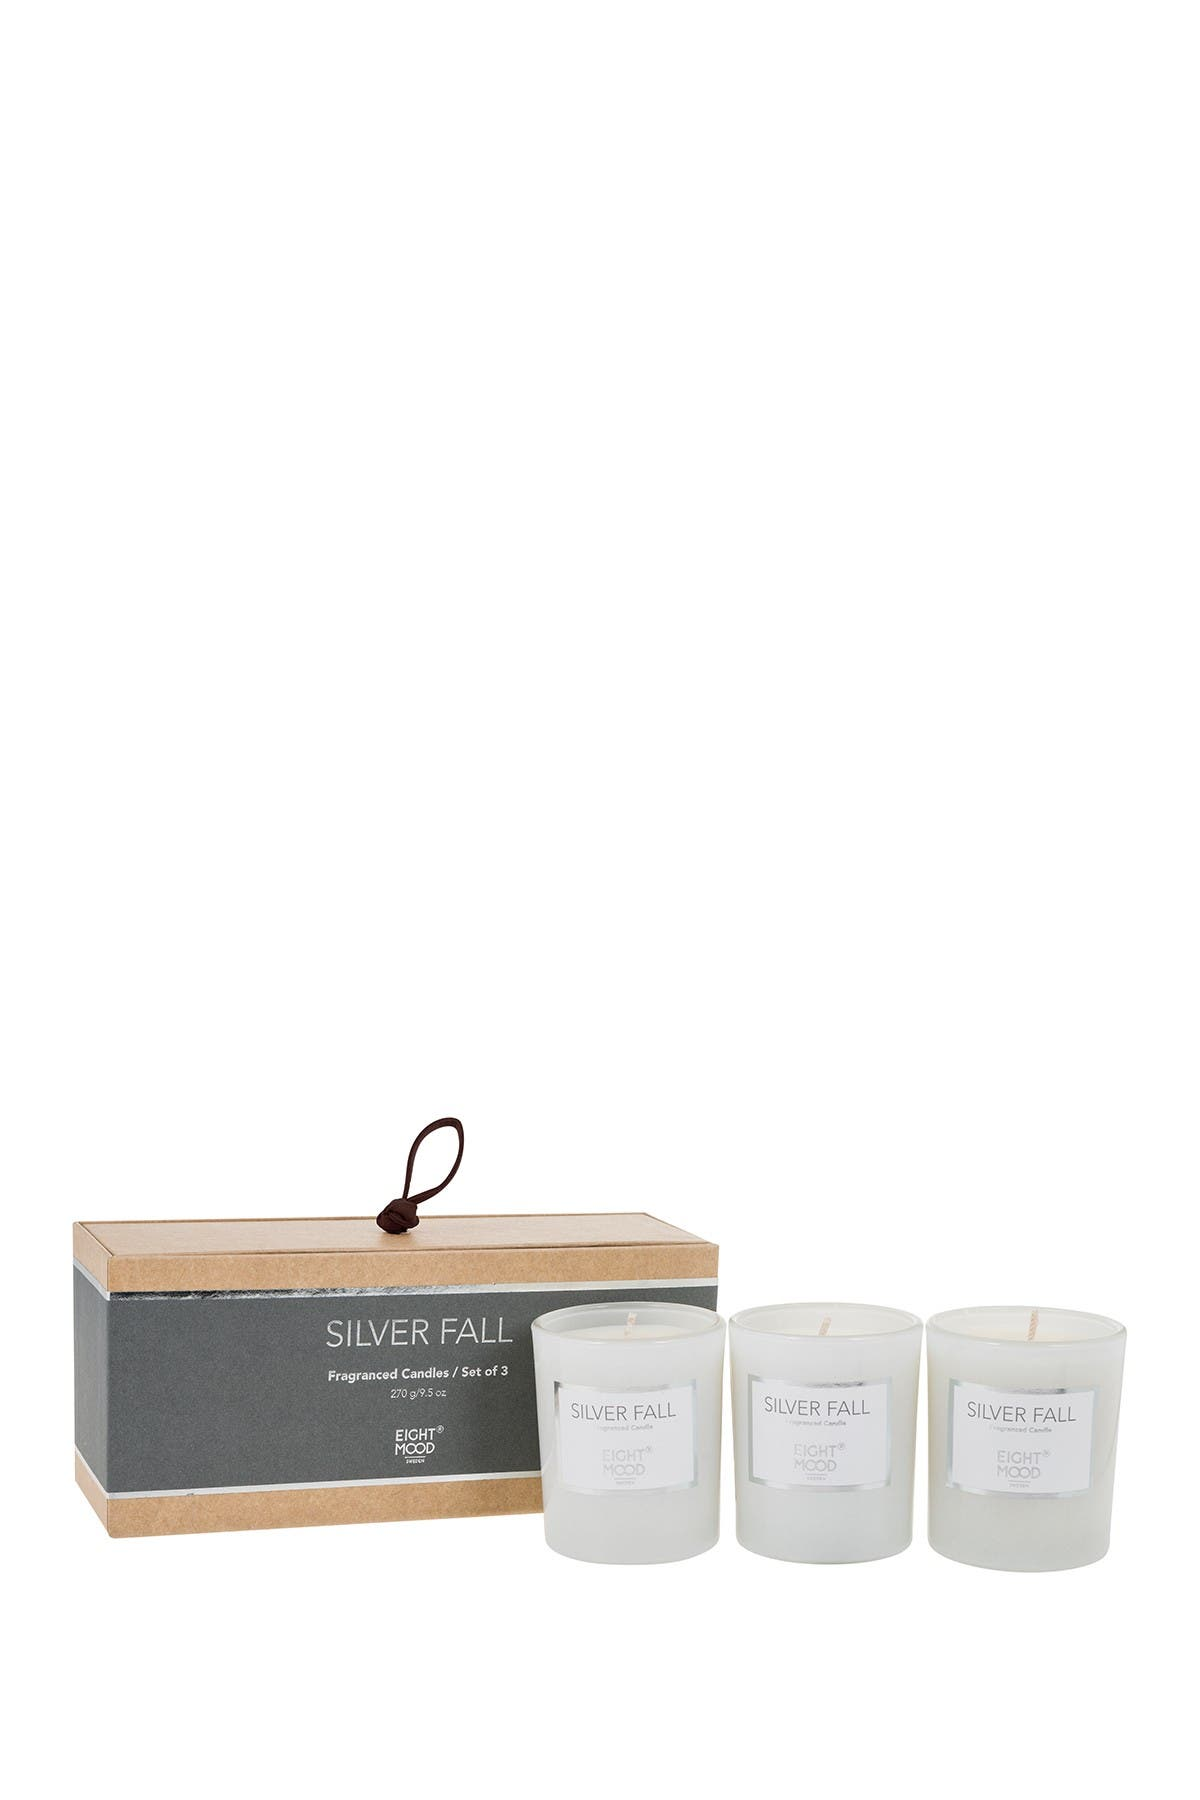 Image of EIGHTMOOD Silver Fall Pure Scented Candle - Set of 3